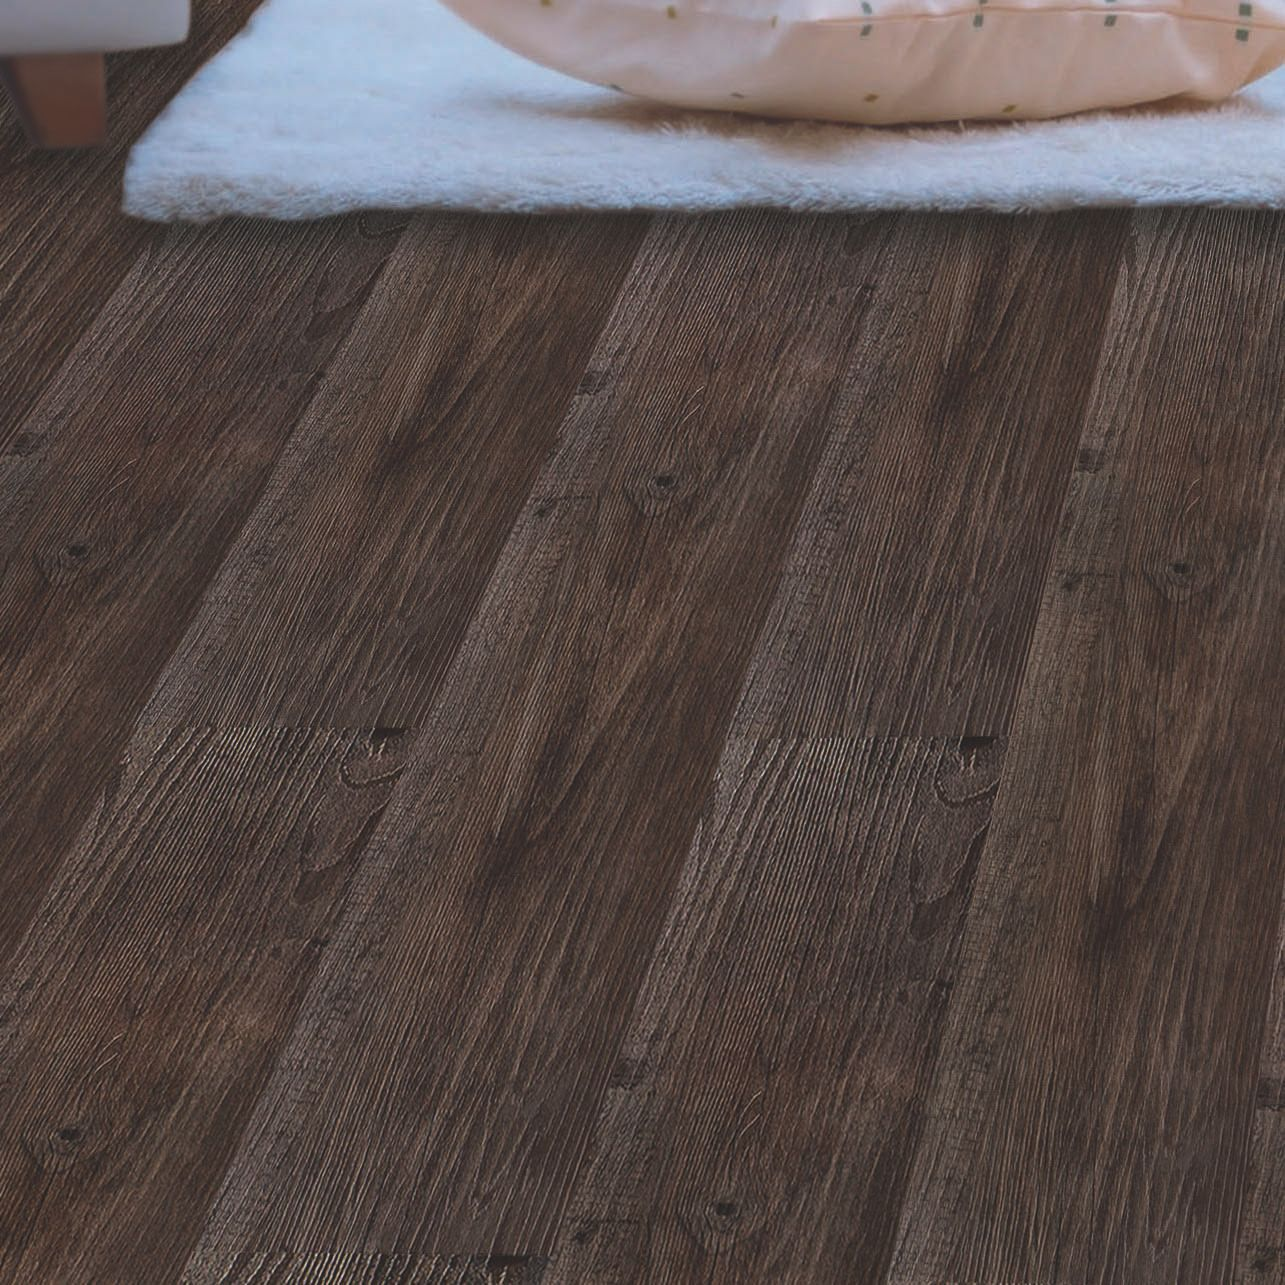 Light Oak Plank Wood Self Stick Adhesive Vinyl Floor Tiles: Colours Self Adhesive Dark Grey Oak Effect Vinyl Plank 0